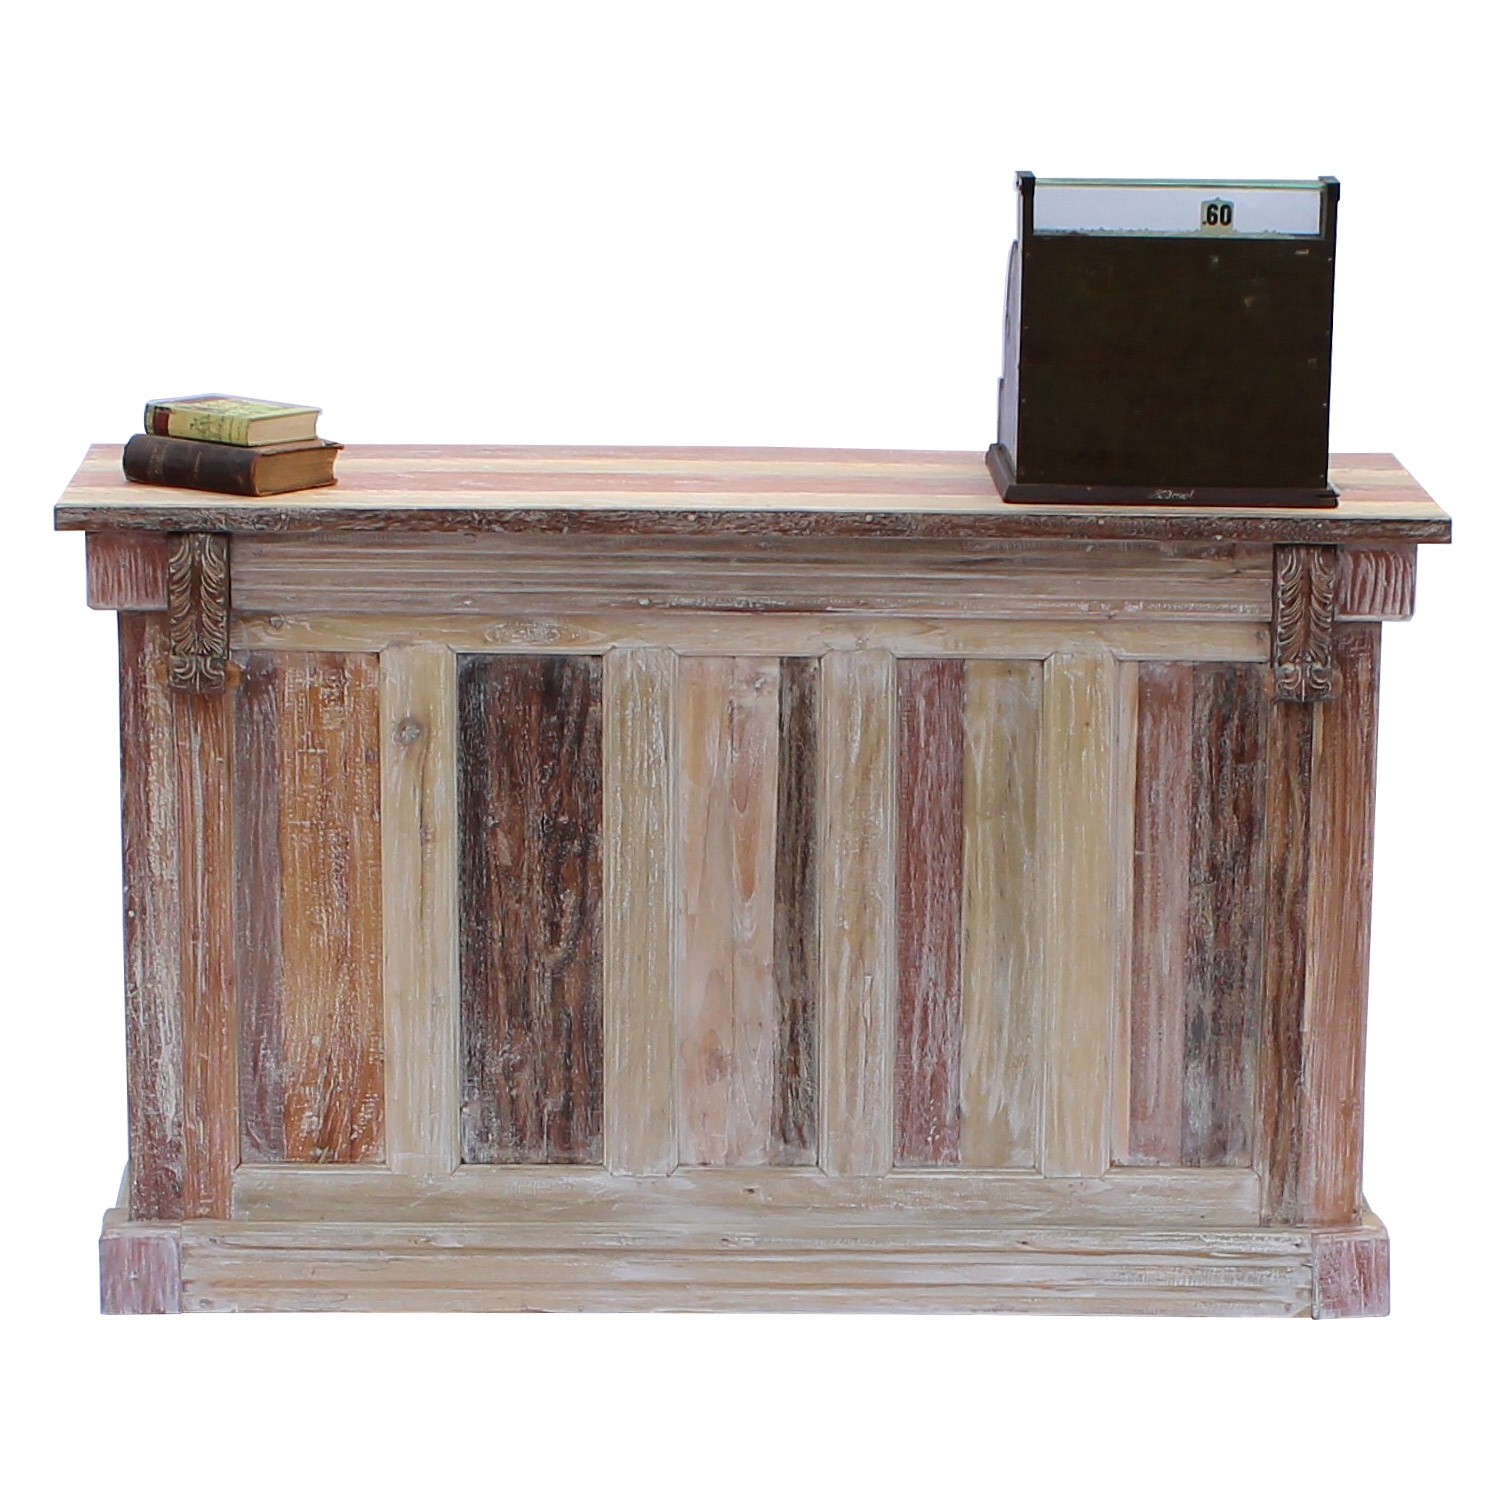 Store Counter Or Home Bar Aged White Wash Repurposed Wood Six Foot